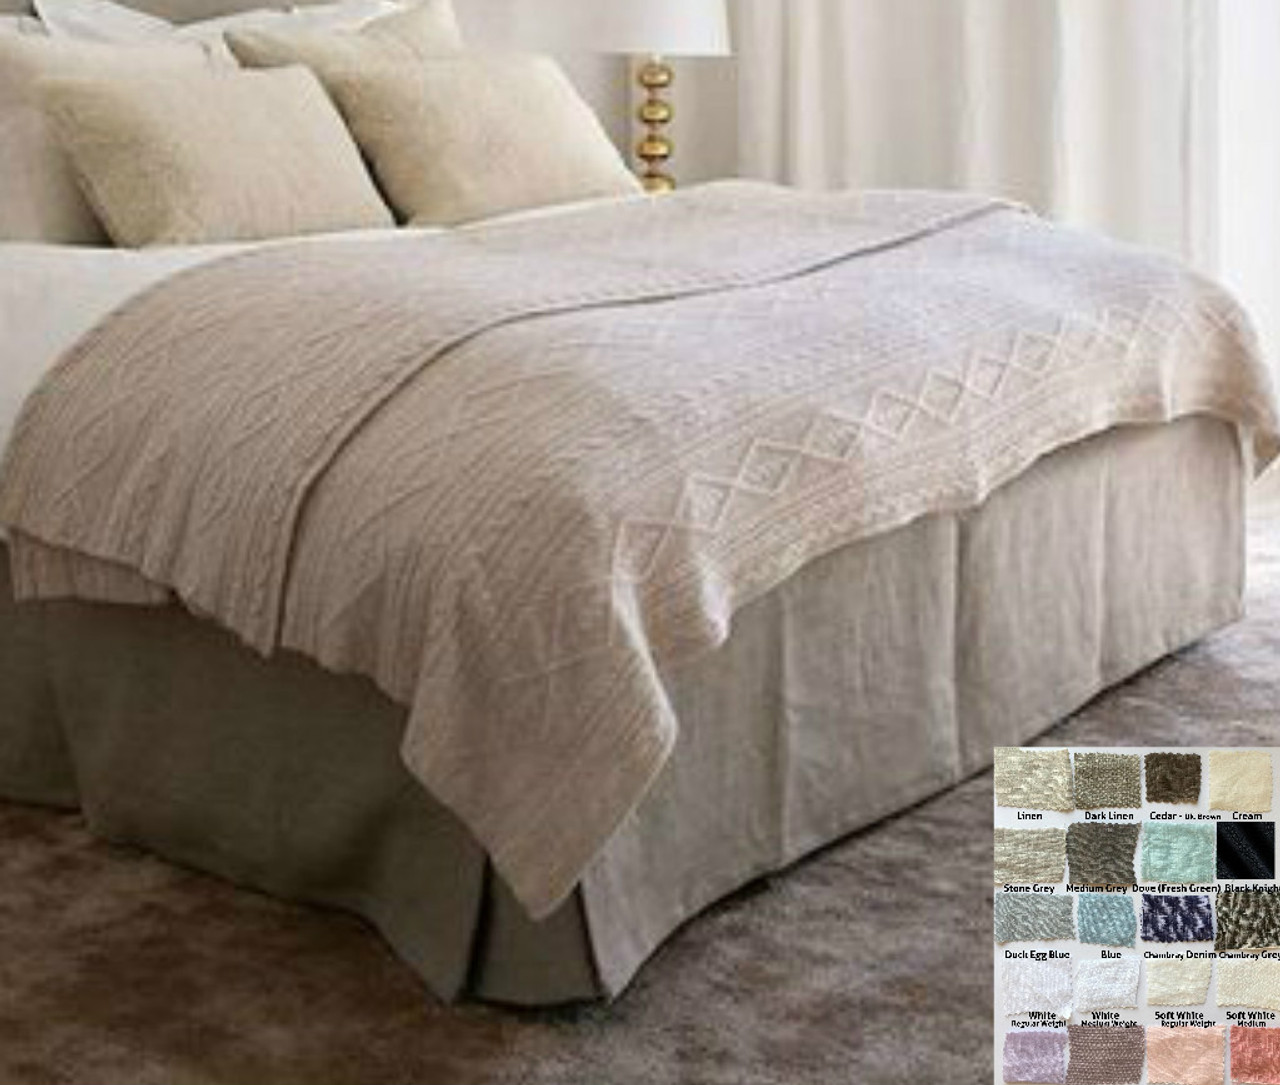 Boxed Linen Bed Skirt Minimalist Classy 15 24 Drop Natural